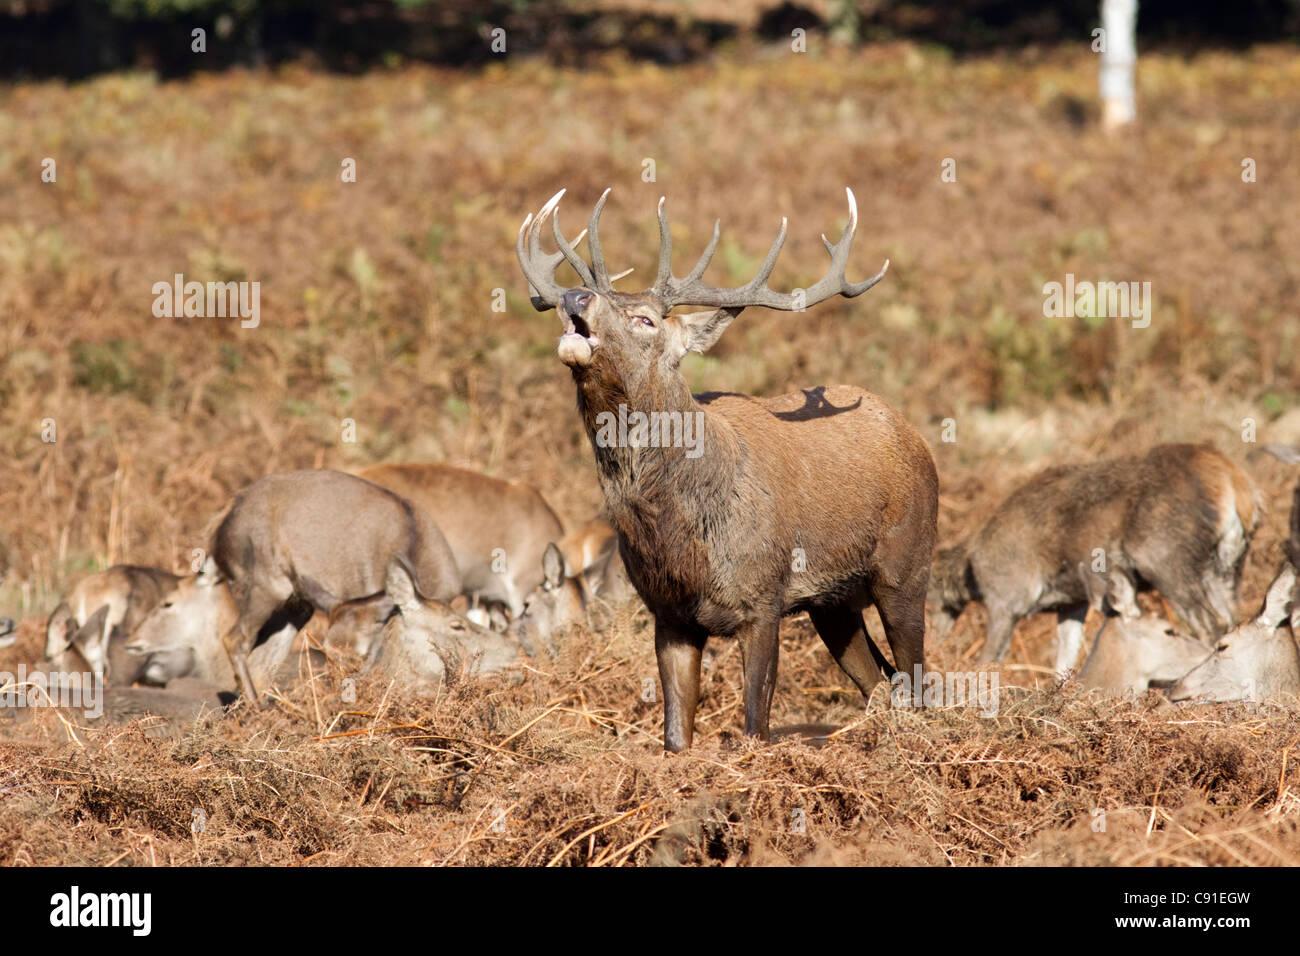 Red deer stag roaring/bellowing during the rut, Curvus elaphus, Richmond park, autumn/fall, Surrey, England, UK - Stock Image